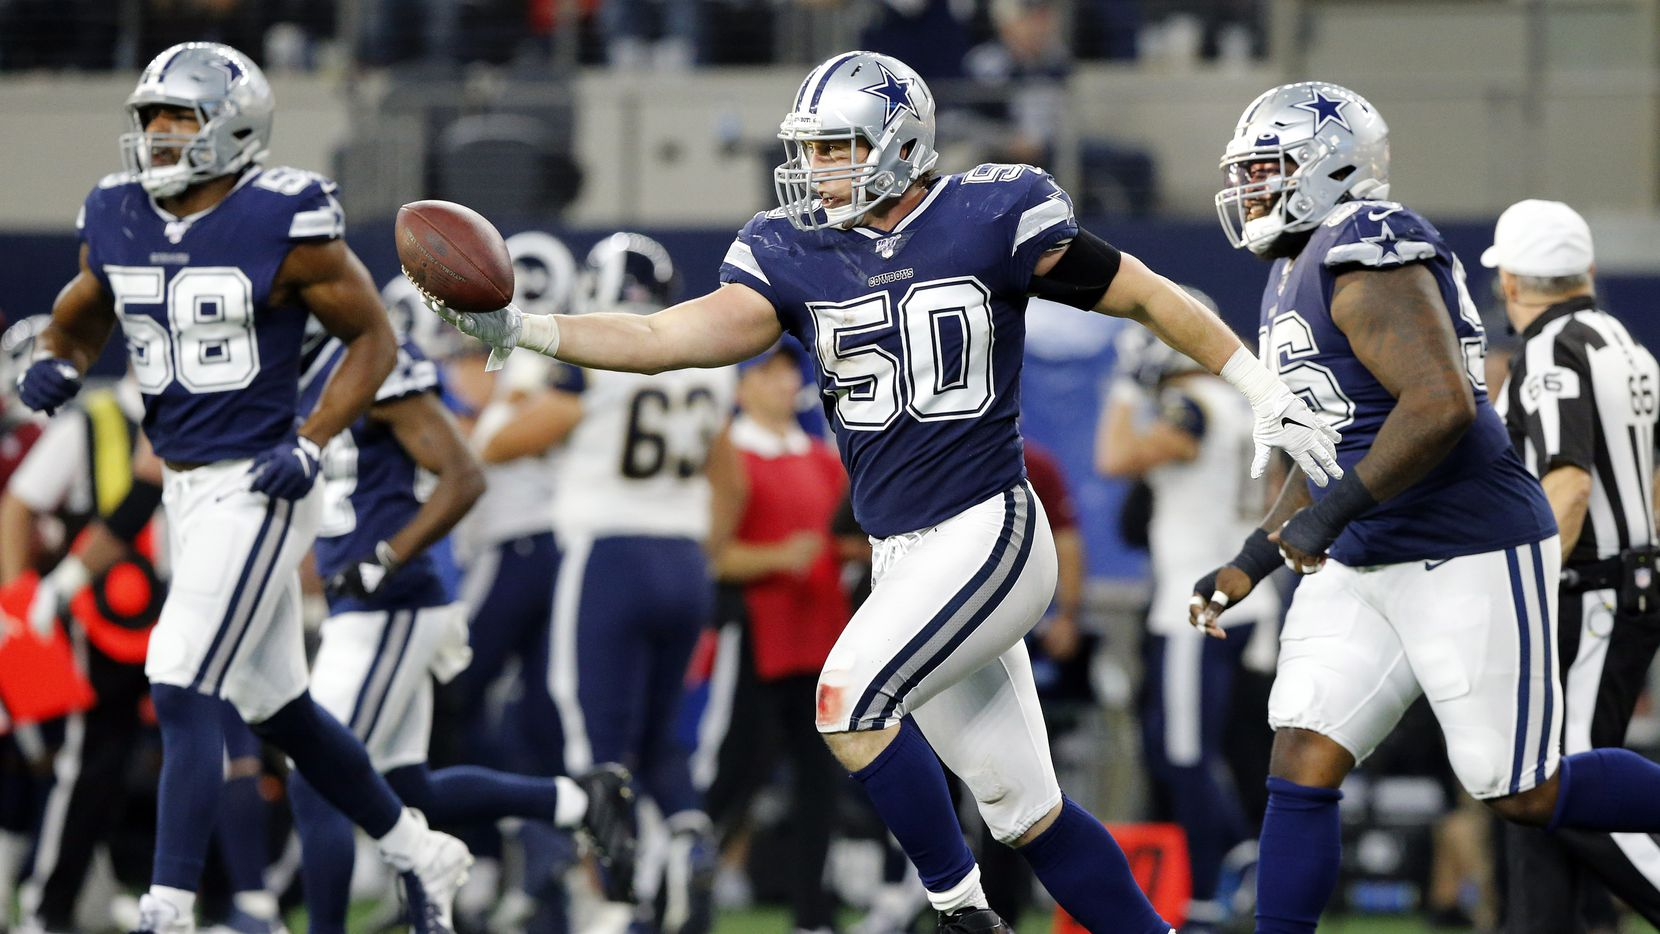 FILE — Dallas Cowboys outside linebacker Sean Lee (50) extends his arm to hand quarterback Dak Prescott (not pictured) the ball after making an interception at AT&T Stadium in Arlington, Texas, Sunday, December 15, 2019.